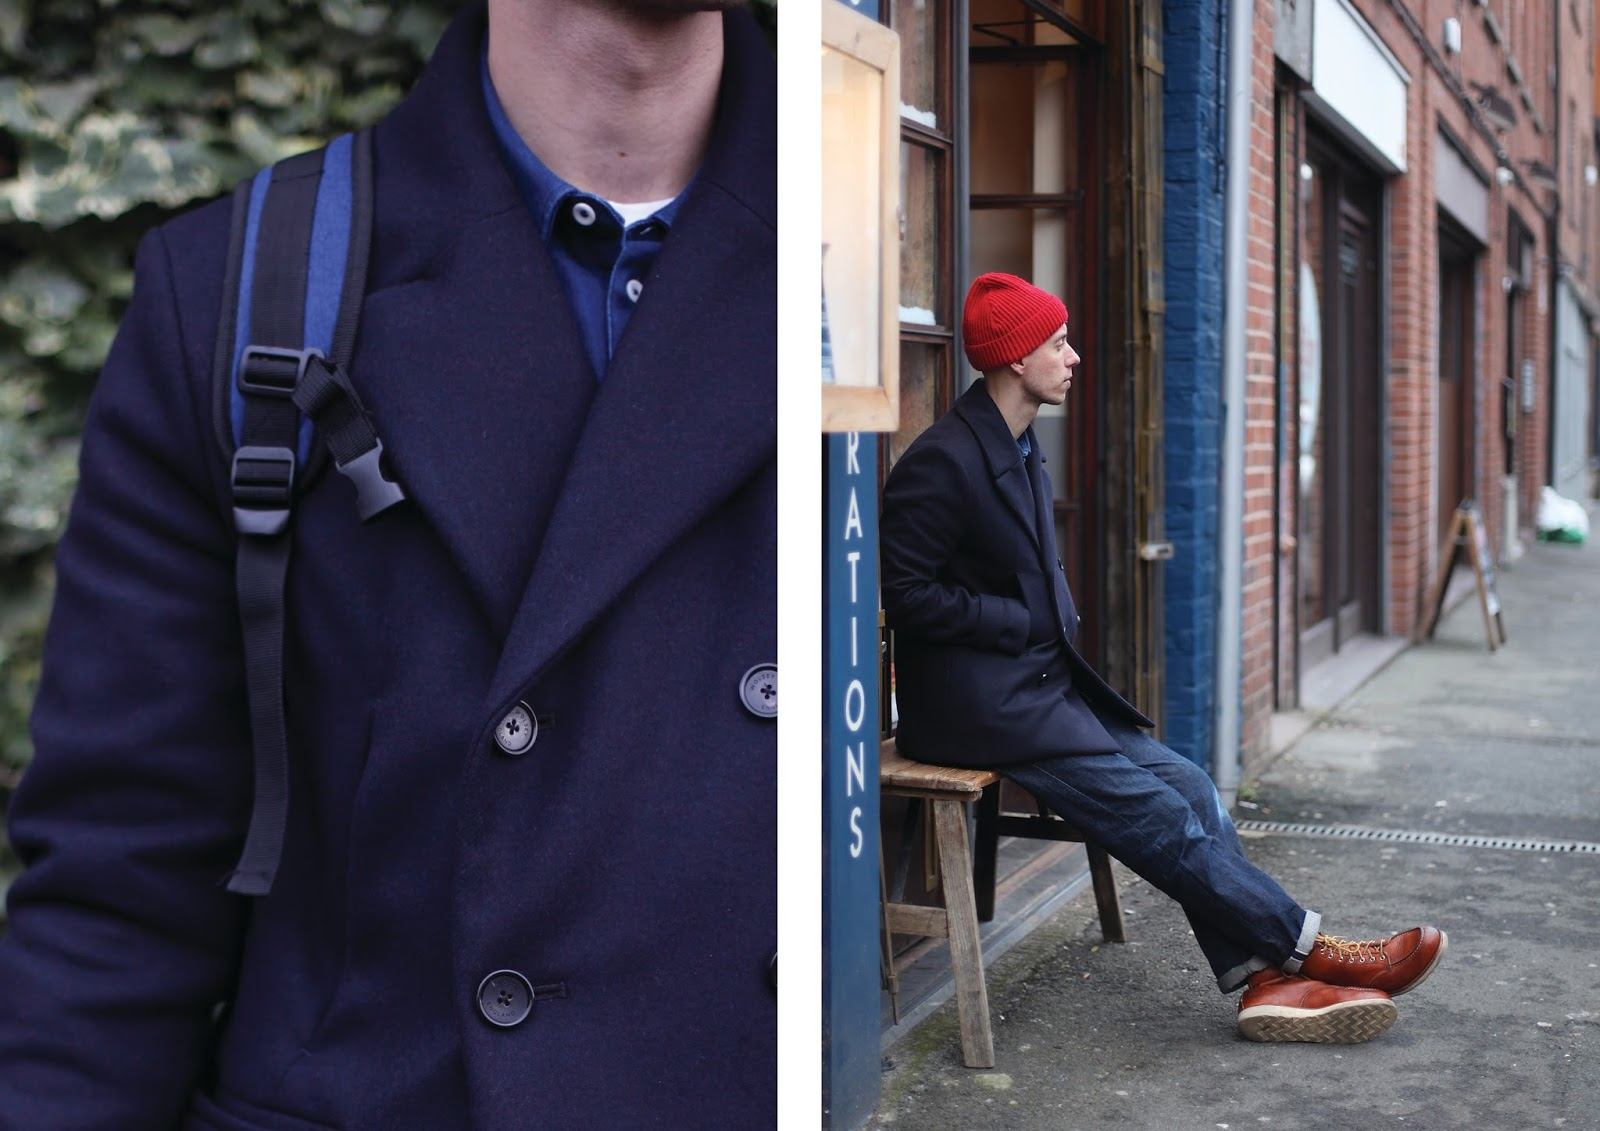 e7df7a86bd9 made in uk navy peancoat by wolsey red beanie hat mens fashion blogger